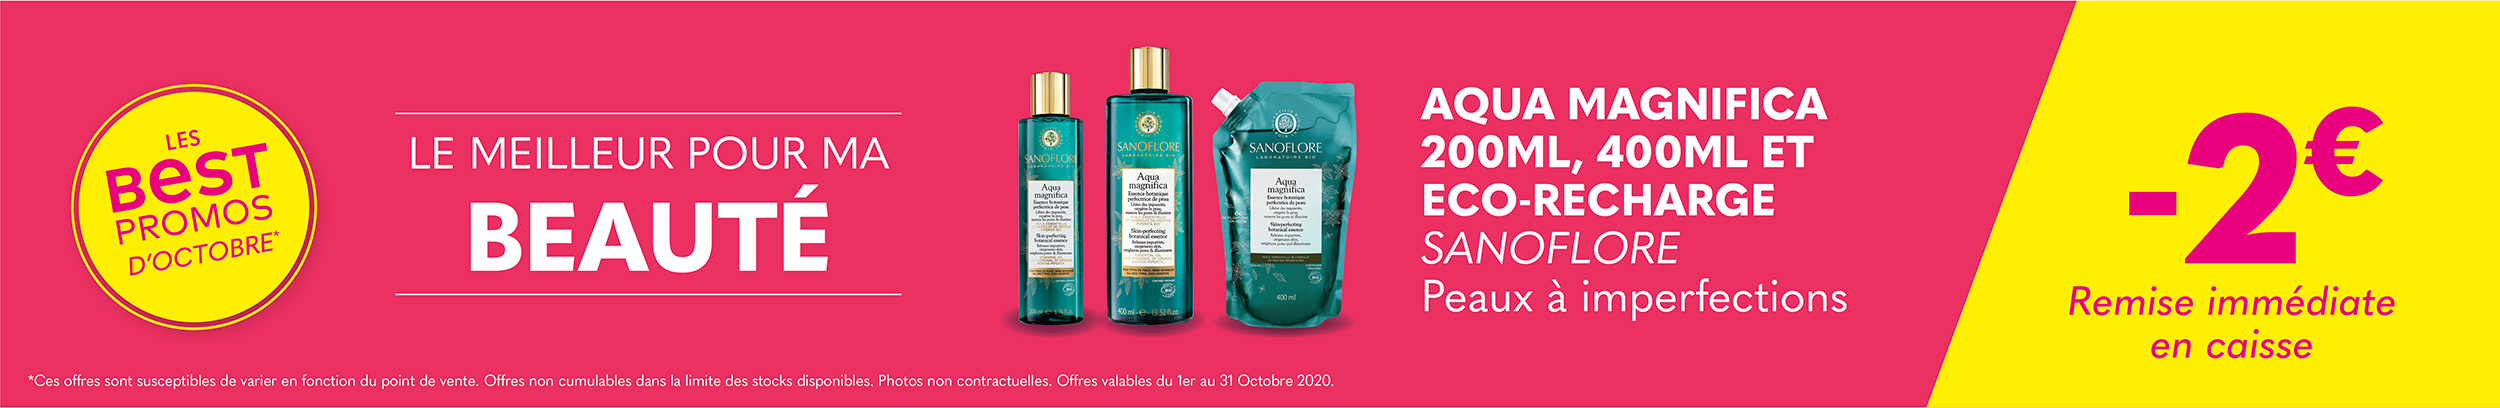 AQUA MAGNIFICA 200ML,  400ML & ECO-RECHARGE  - SANOFLORE / Peaux à imperfections